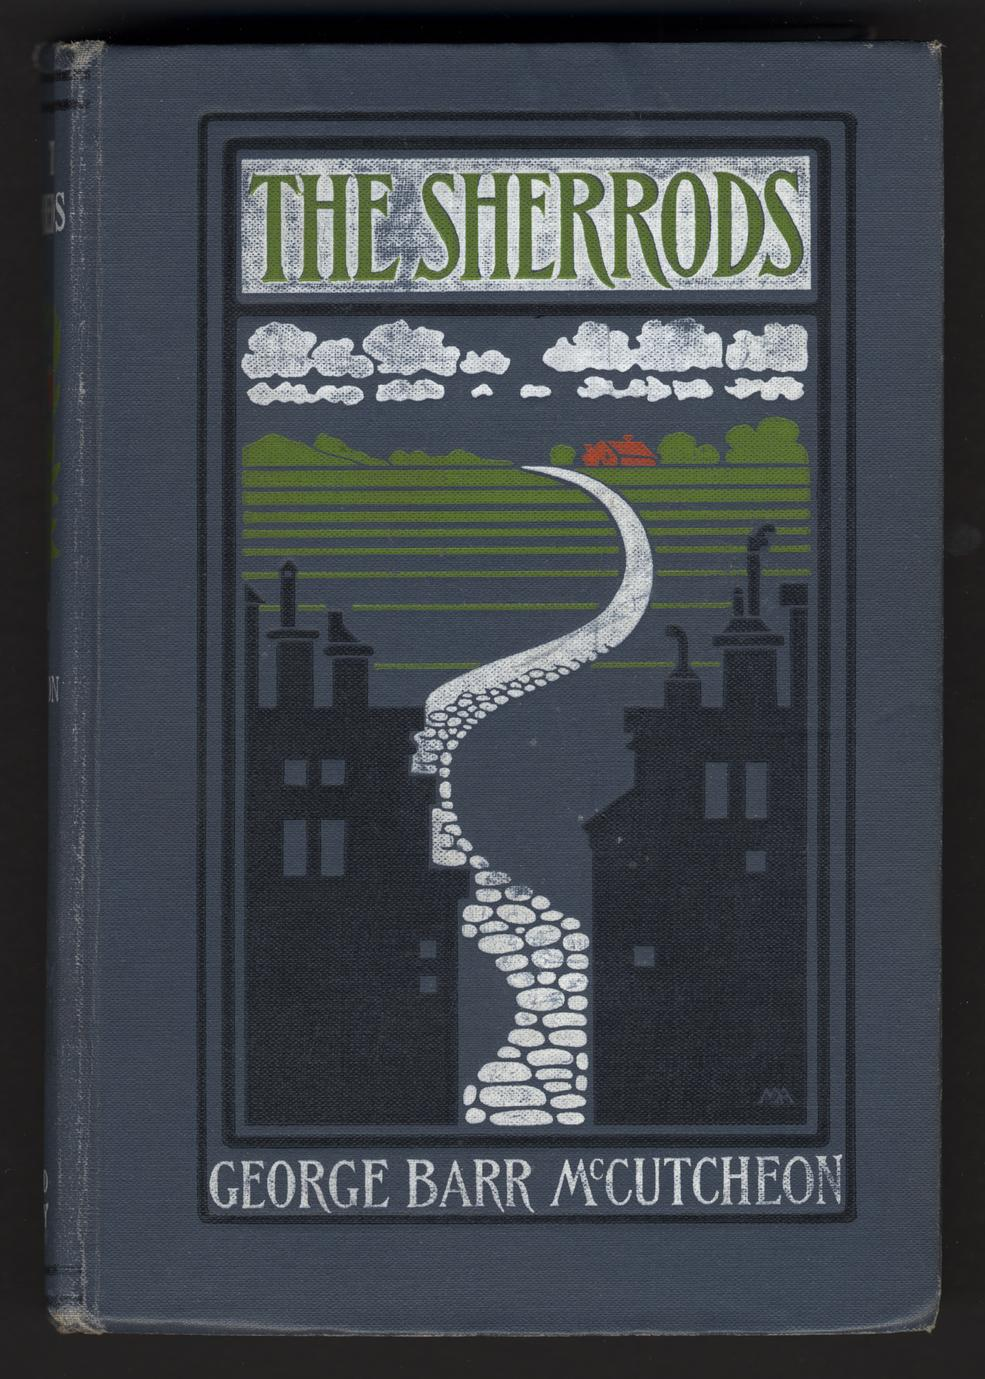 The Sherrods (1 of 3)